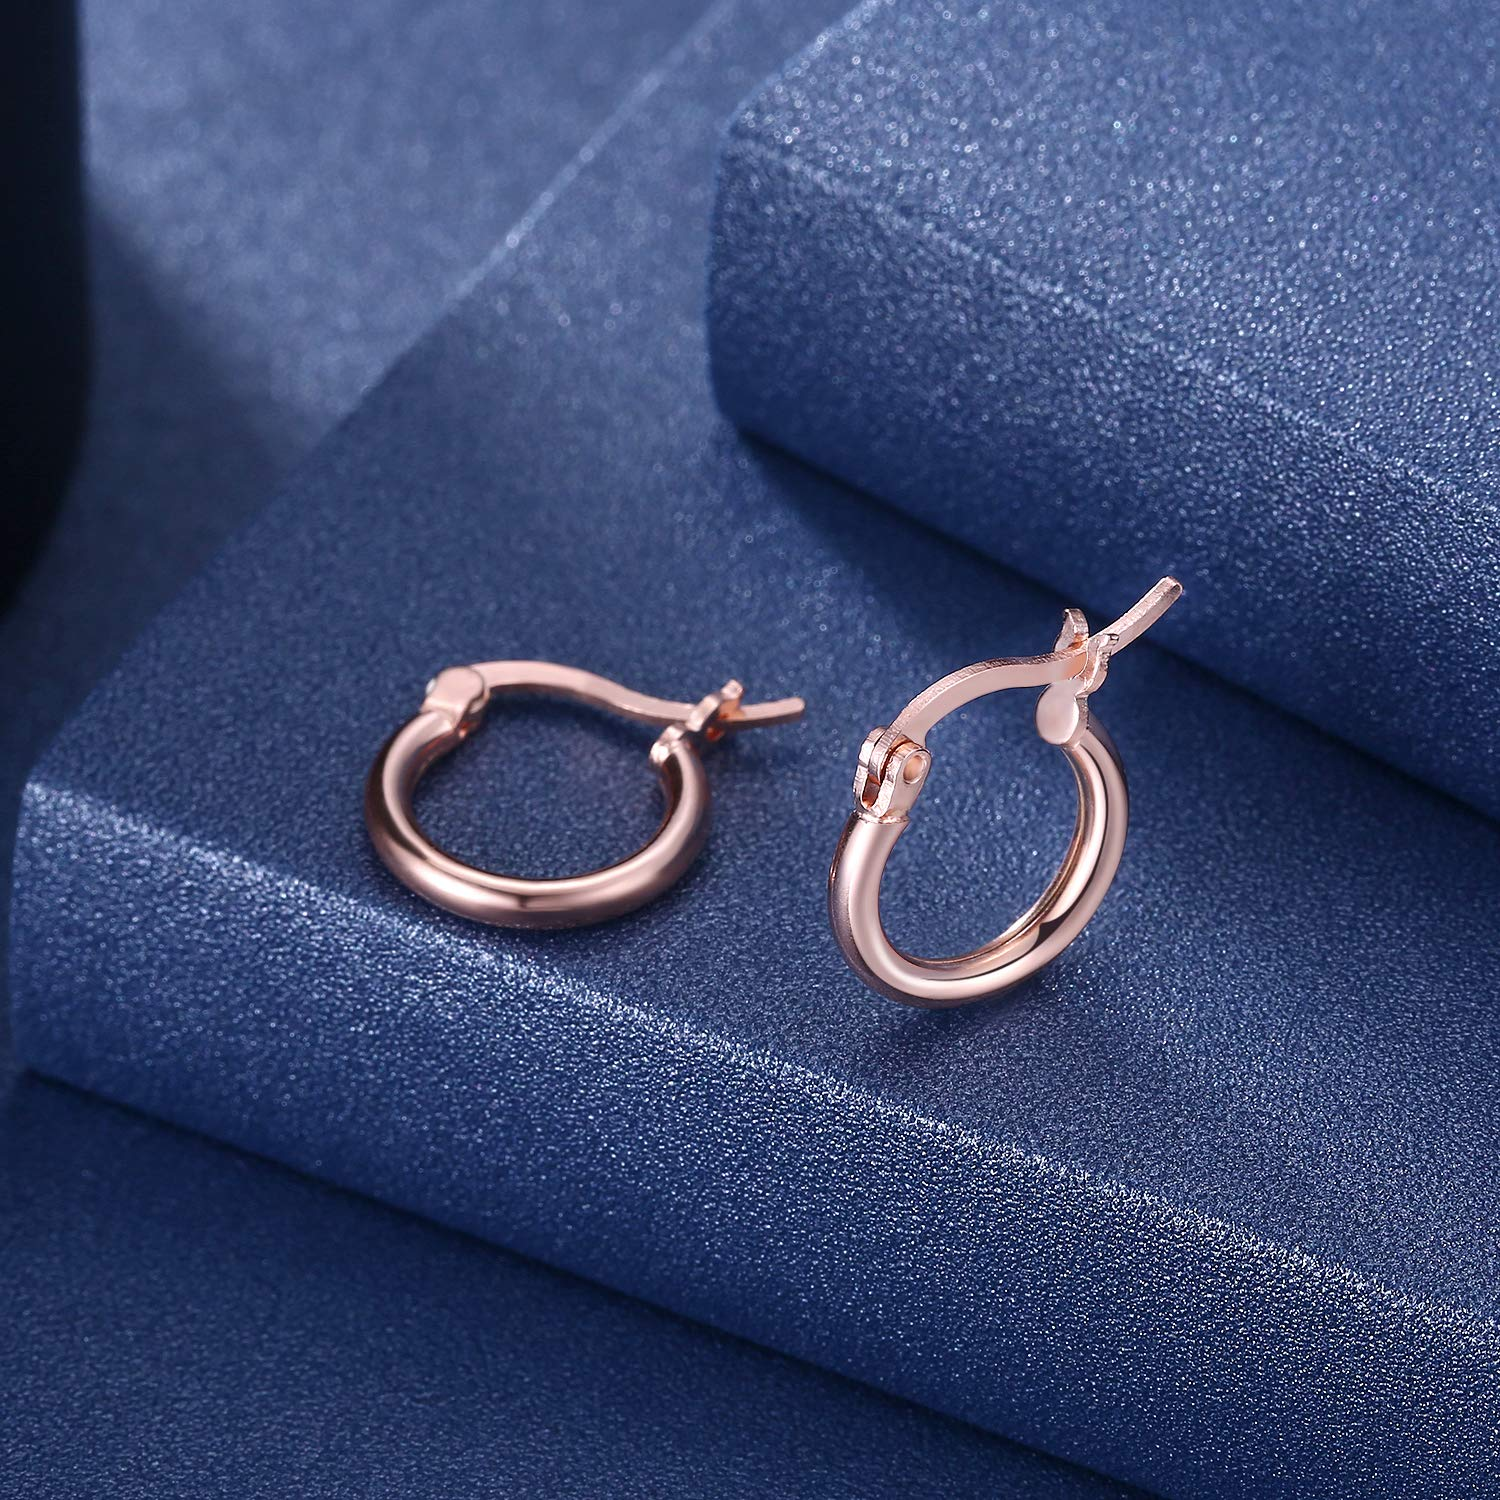 Amazon Rose Gold Earrings Earrings for Women Fashion Jewelry